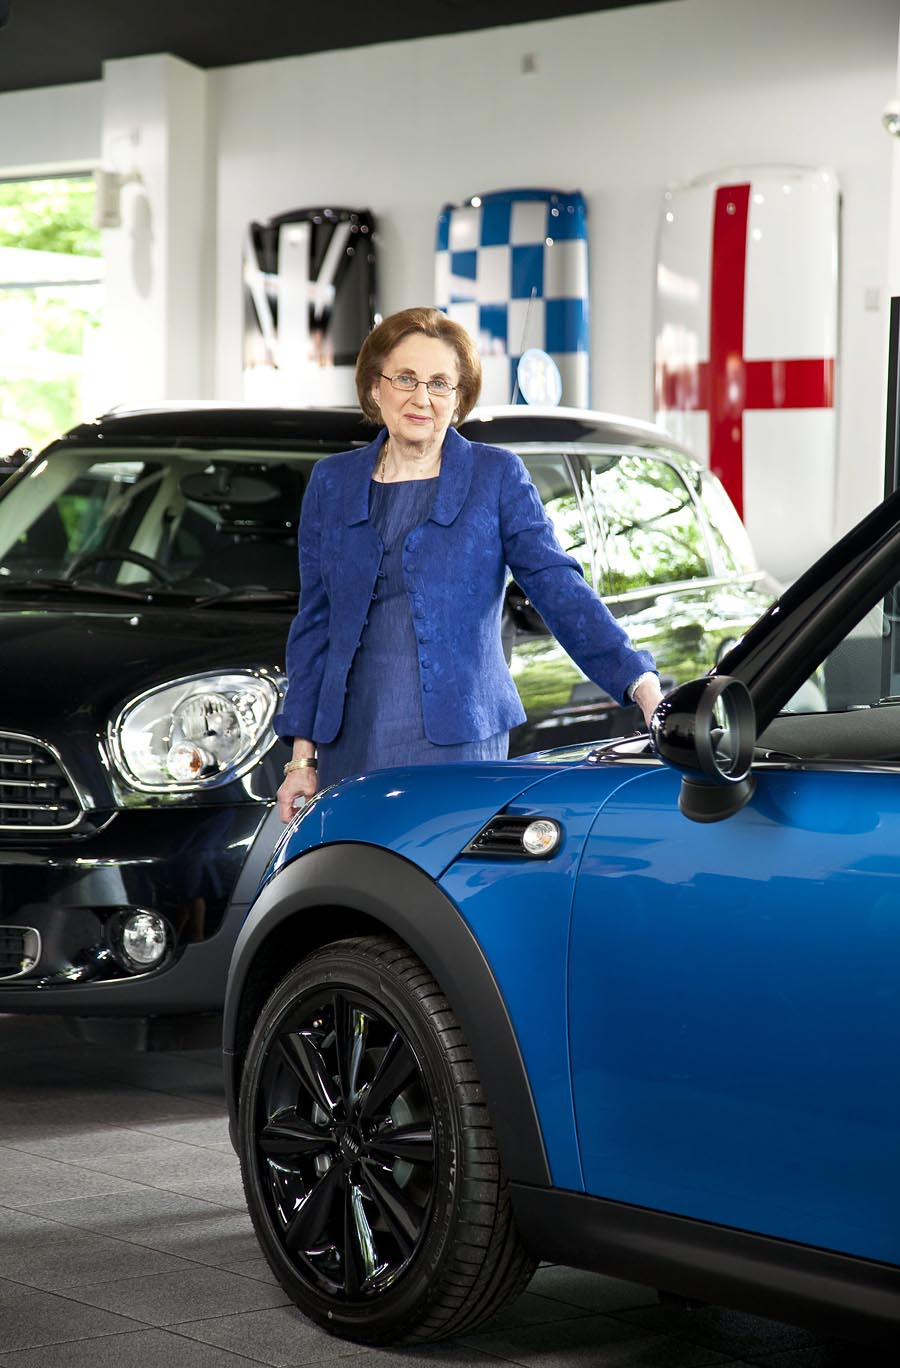 A woman dressed in blue next to a blue mini car in a car showroom.